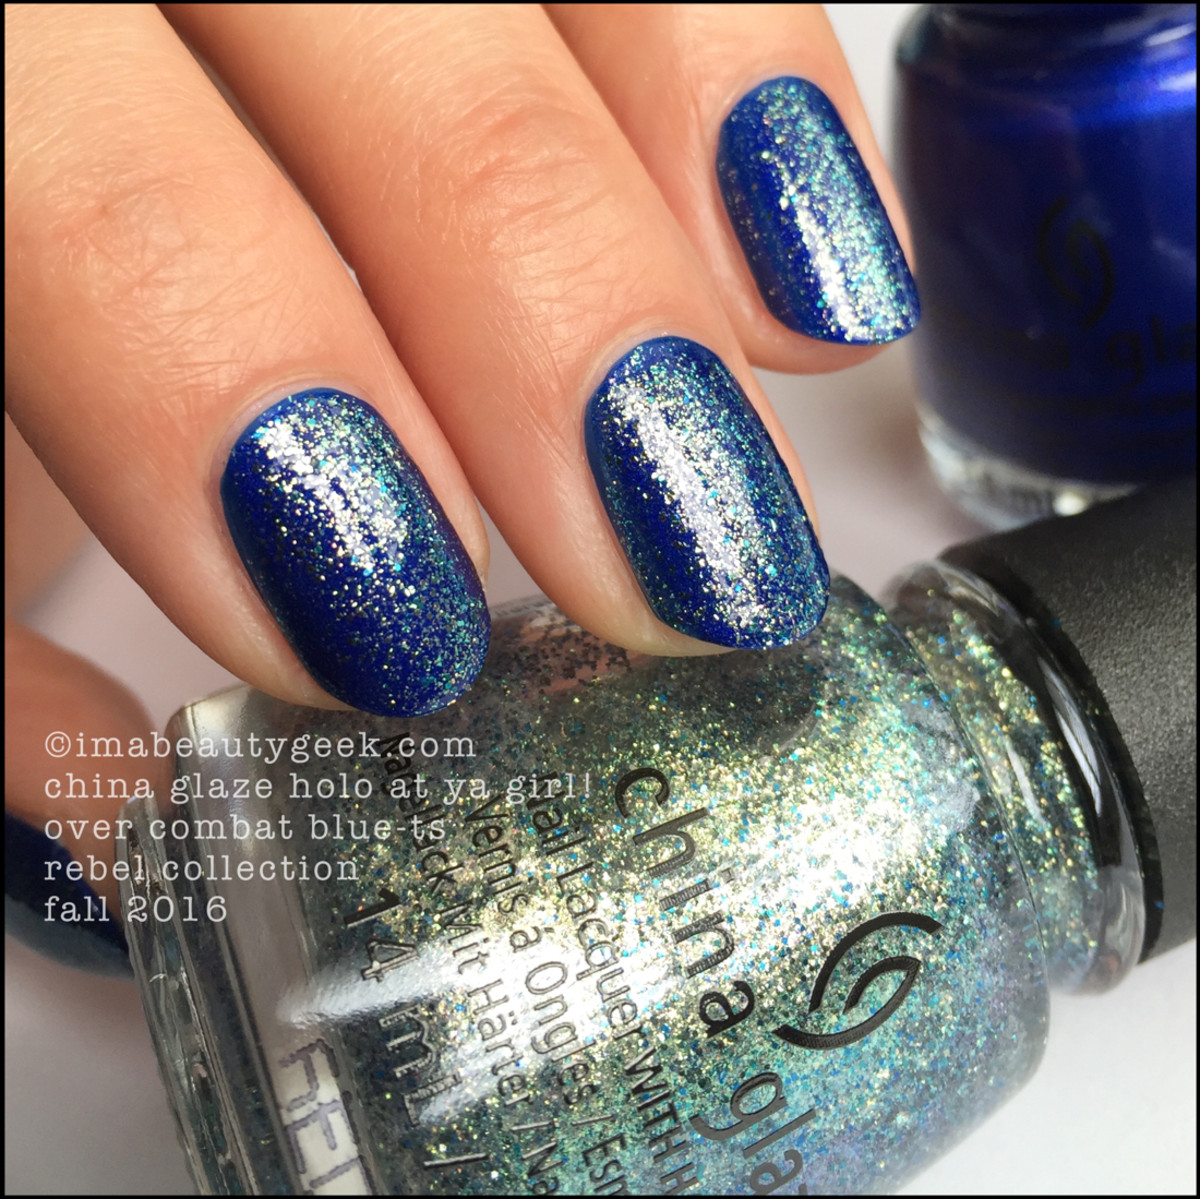 China Glaze Holo at ya girl over Combat Bluets_China Glaze Rebel Collection Swatches Review